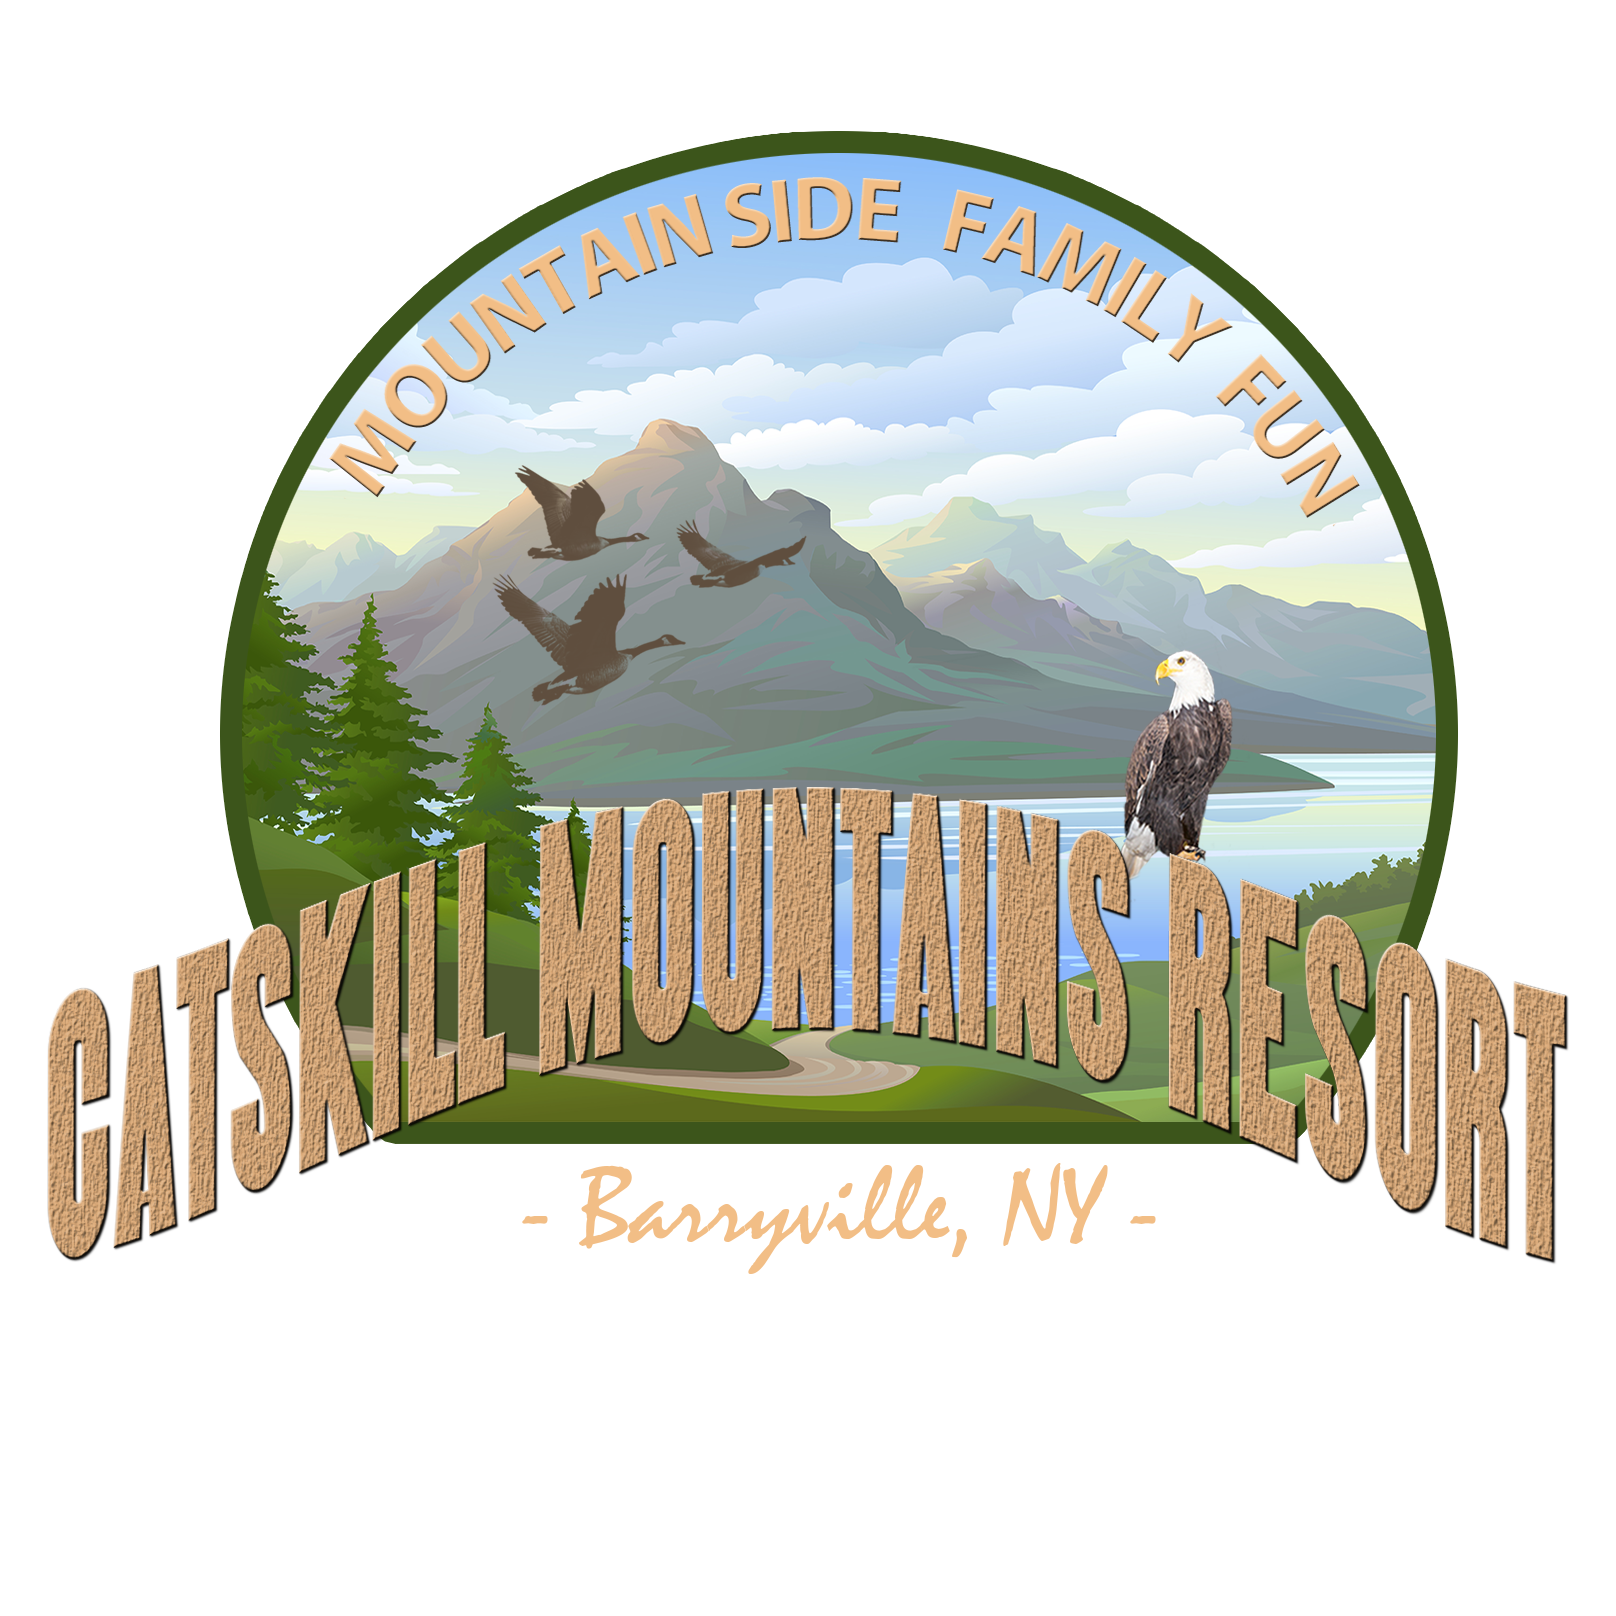 Catskill Mountains Resort image 19